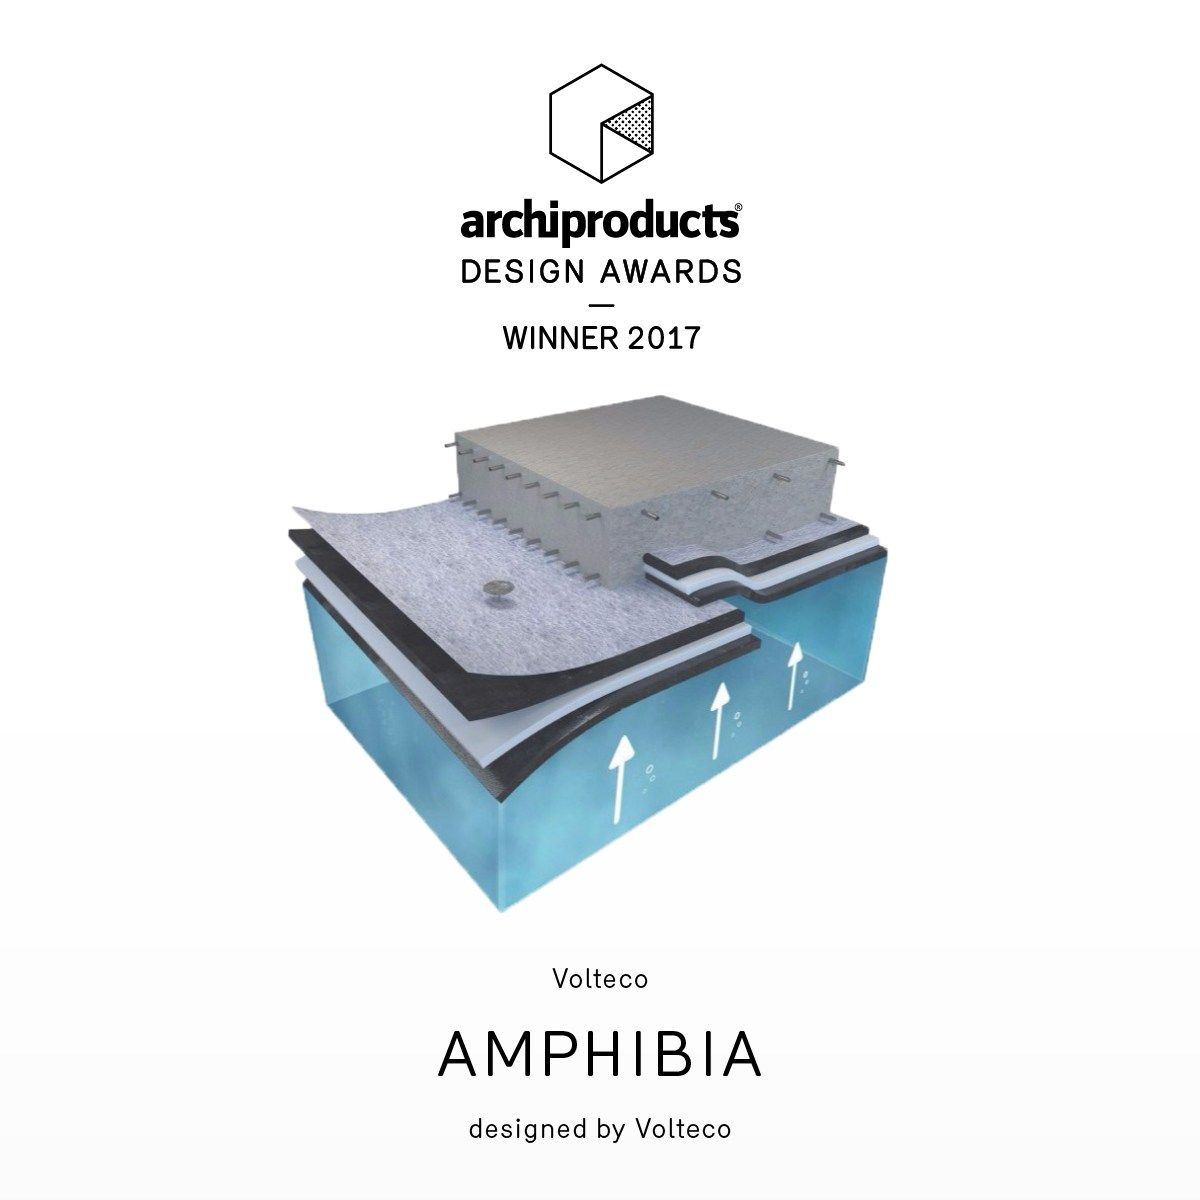 Archiproducts Design Awards per Volteco